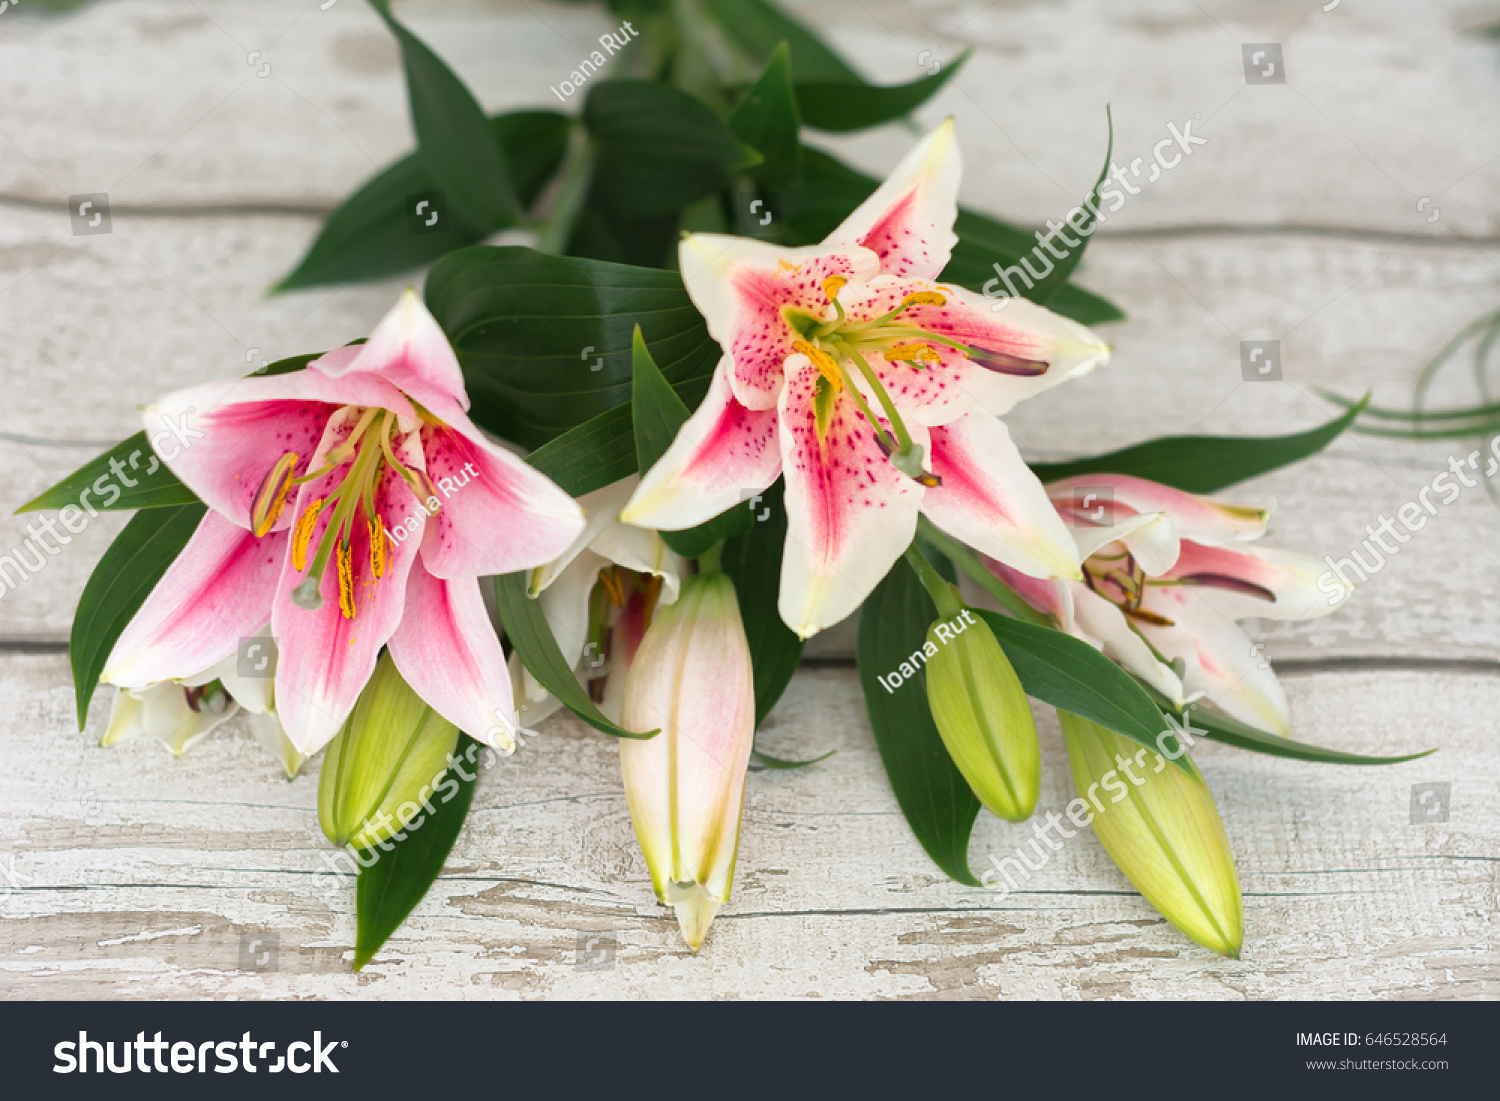 Beautiful pink lily flowers on wooden stock photo edit now beautiful pink lily flowers on wooden background with space for text perfect image for izmirmasajfo